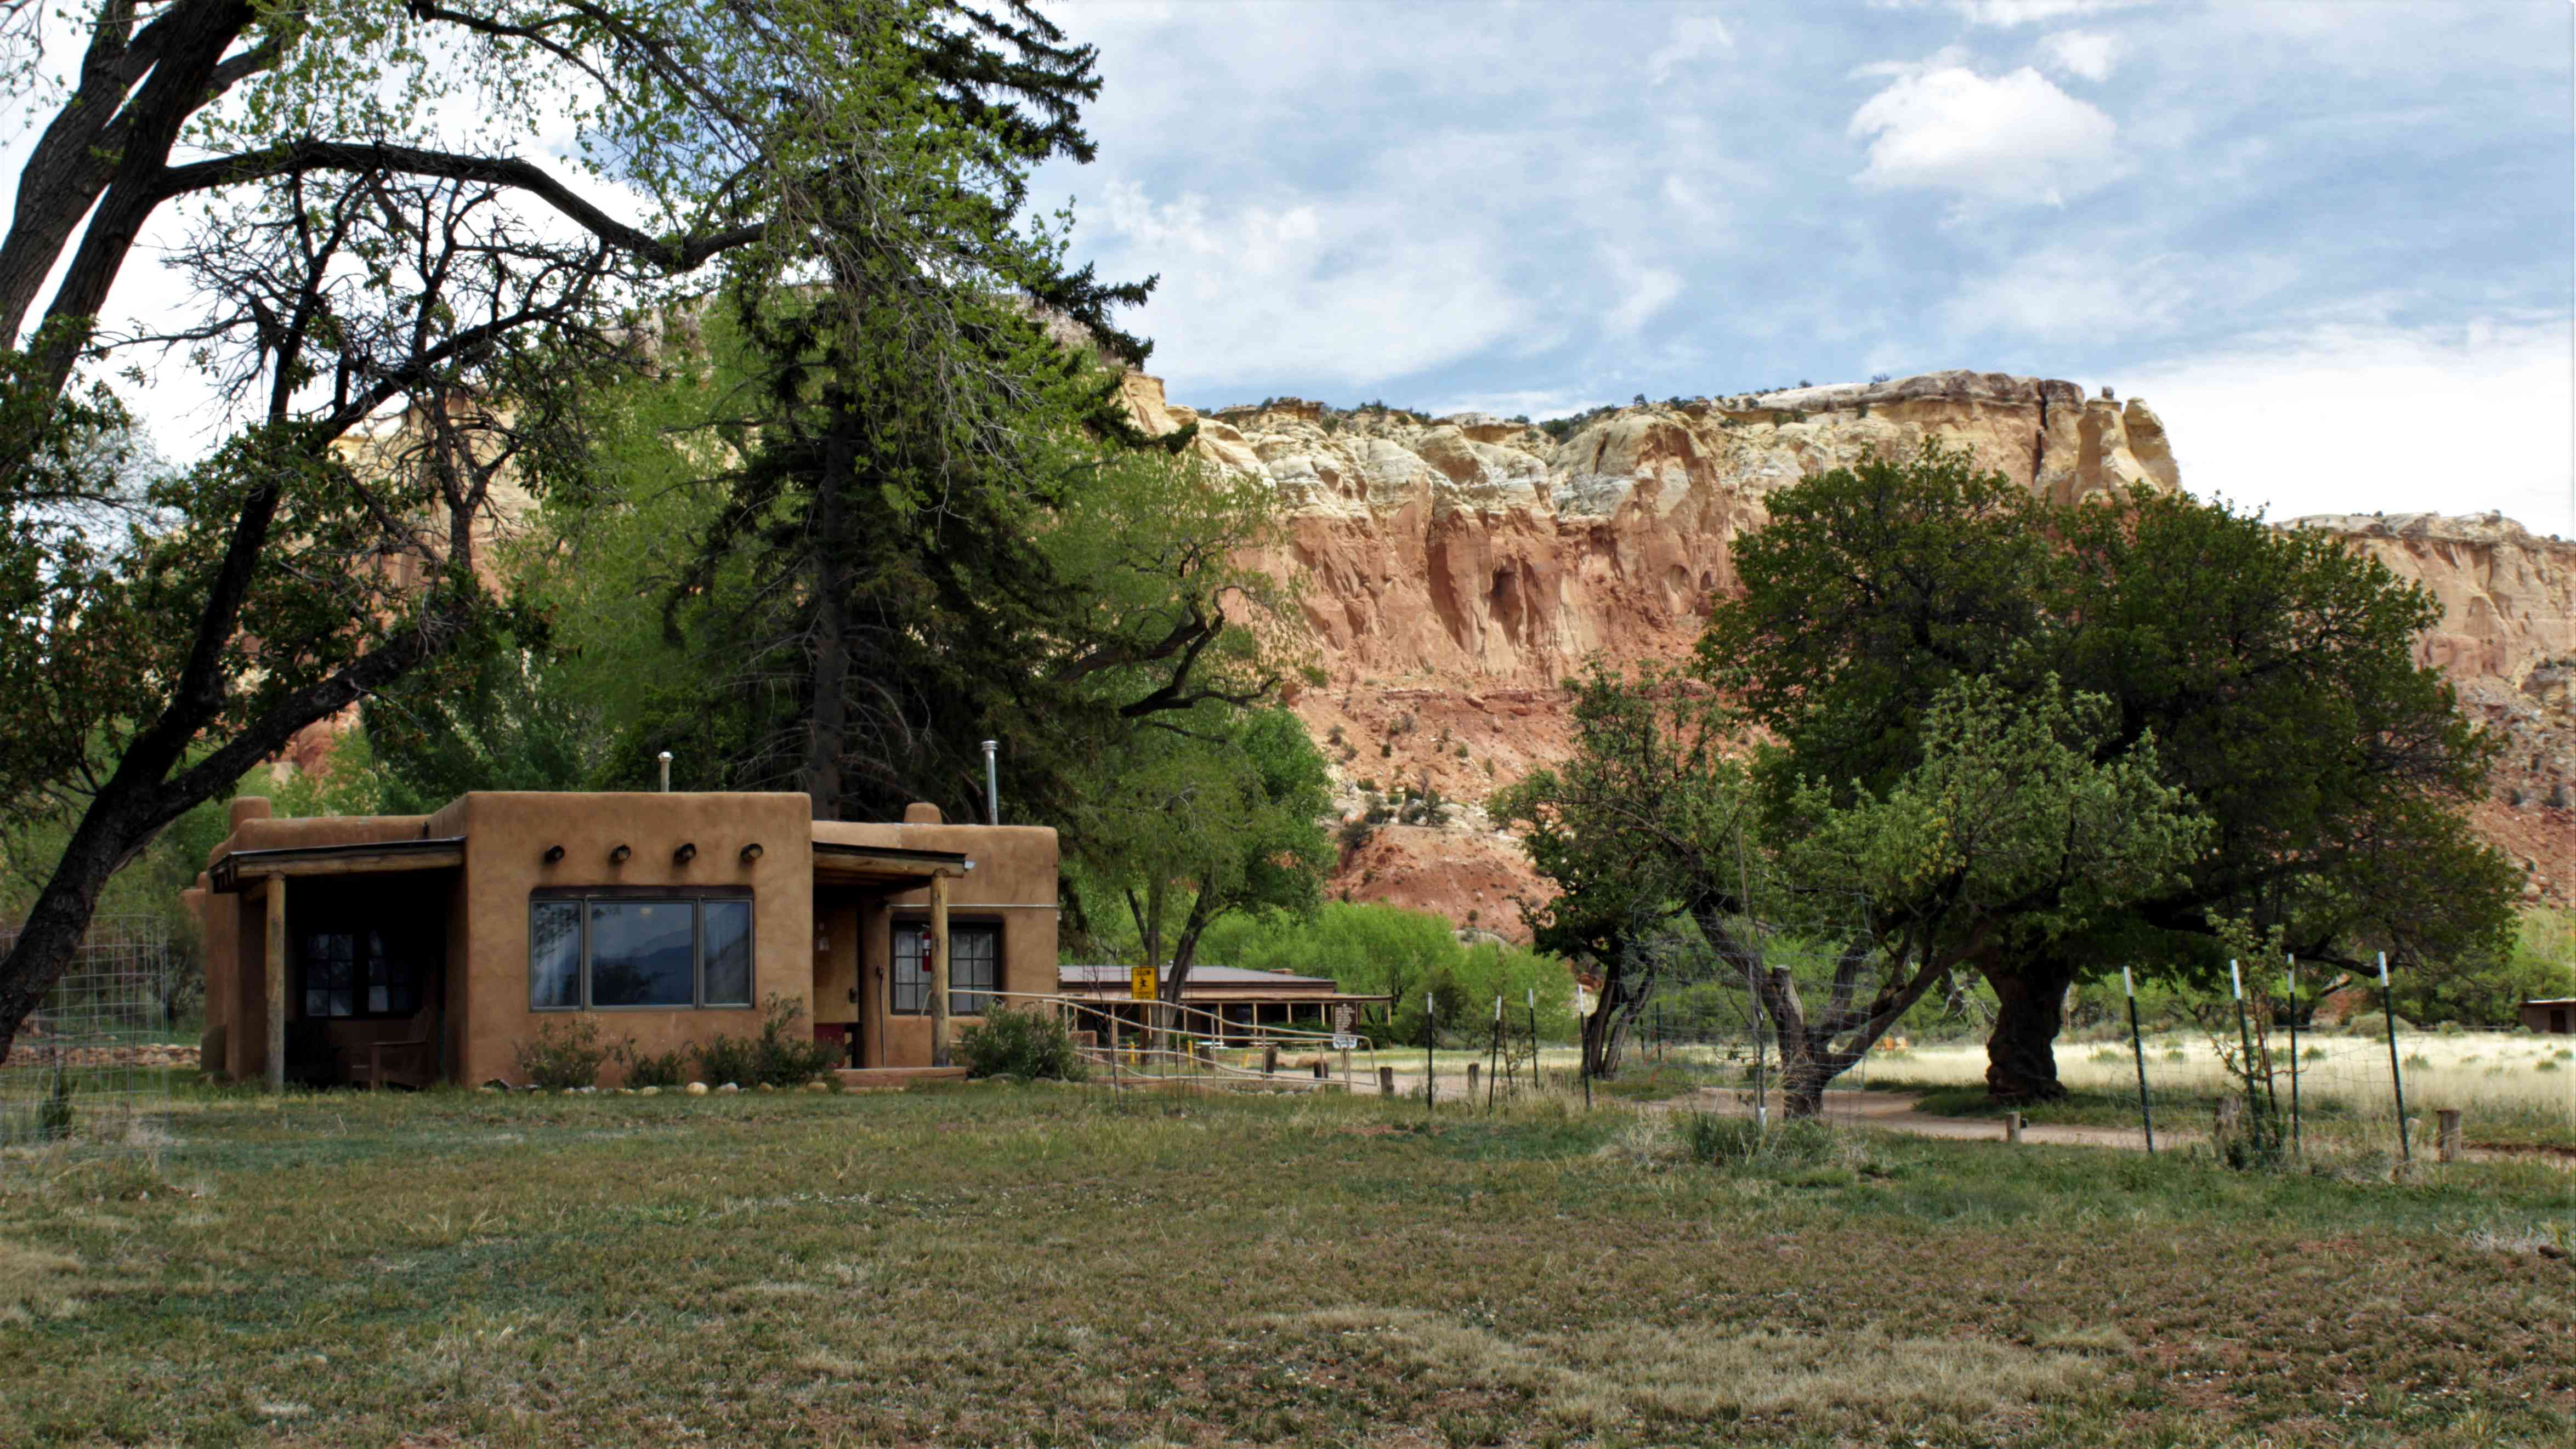 Image of Georgia O'Keeffe's Ghost Ranch in Abiquiu, New Mexico surrounded by trees and desert landscape